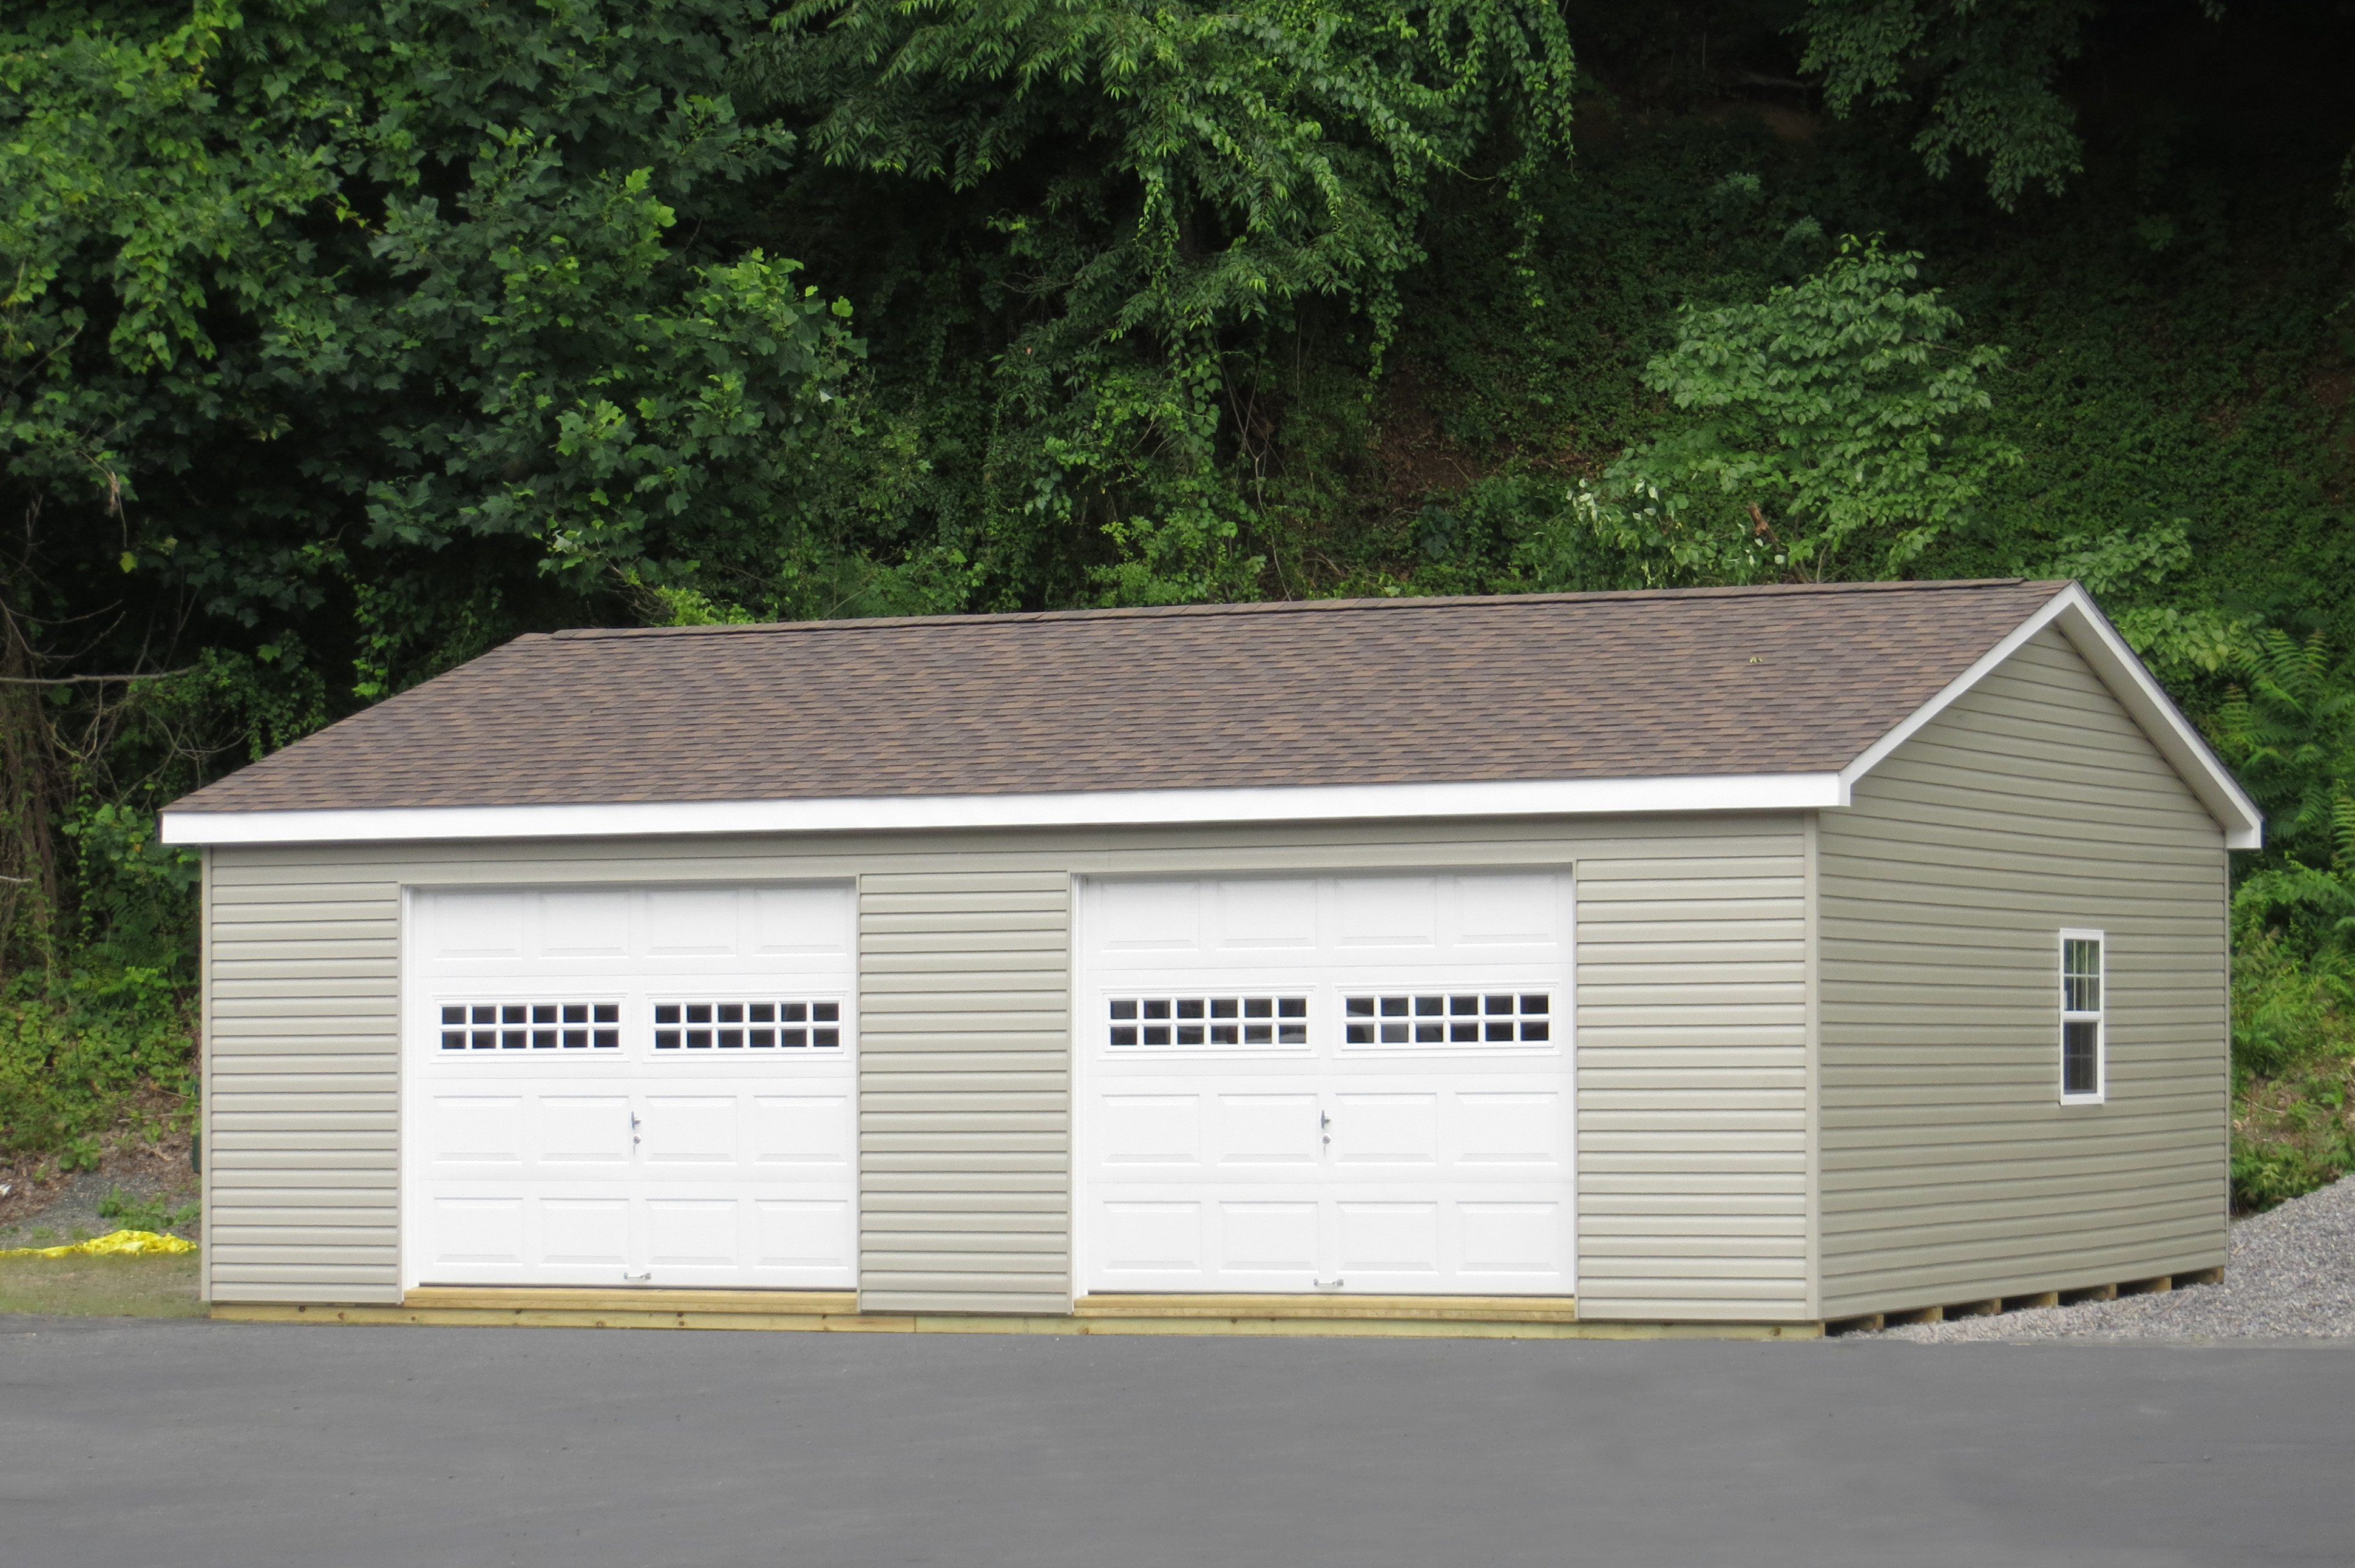 Buy a Temporary Garage for 1 or 2 Cars Portable Garage